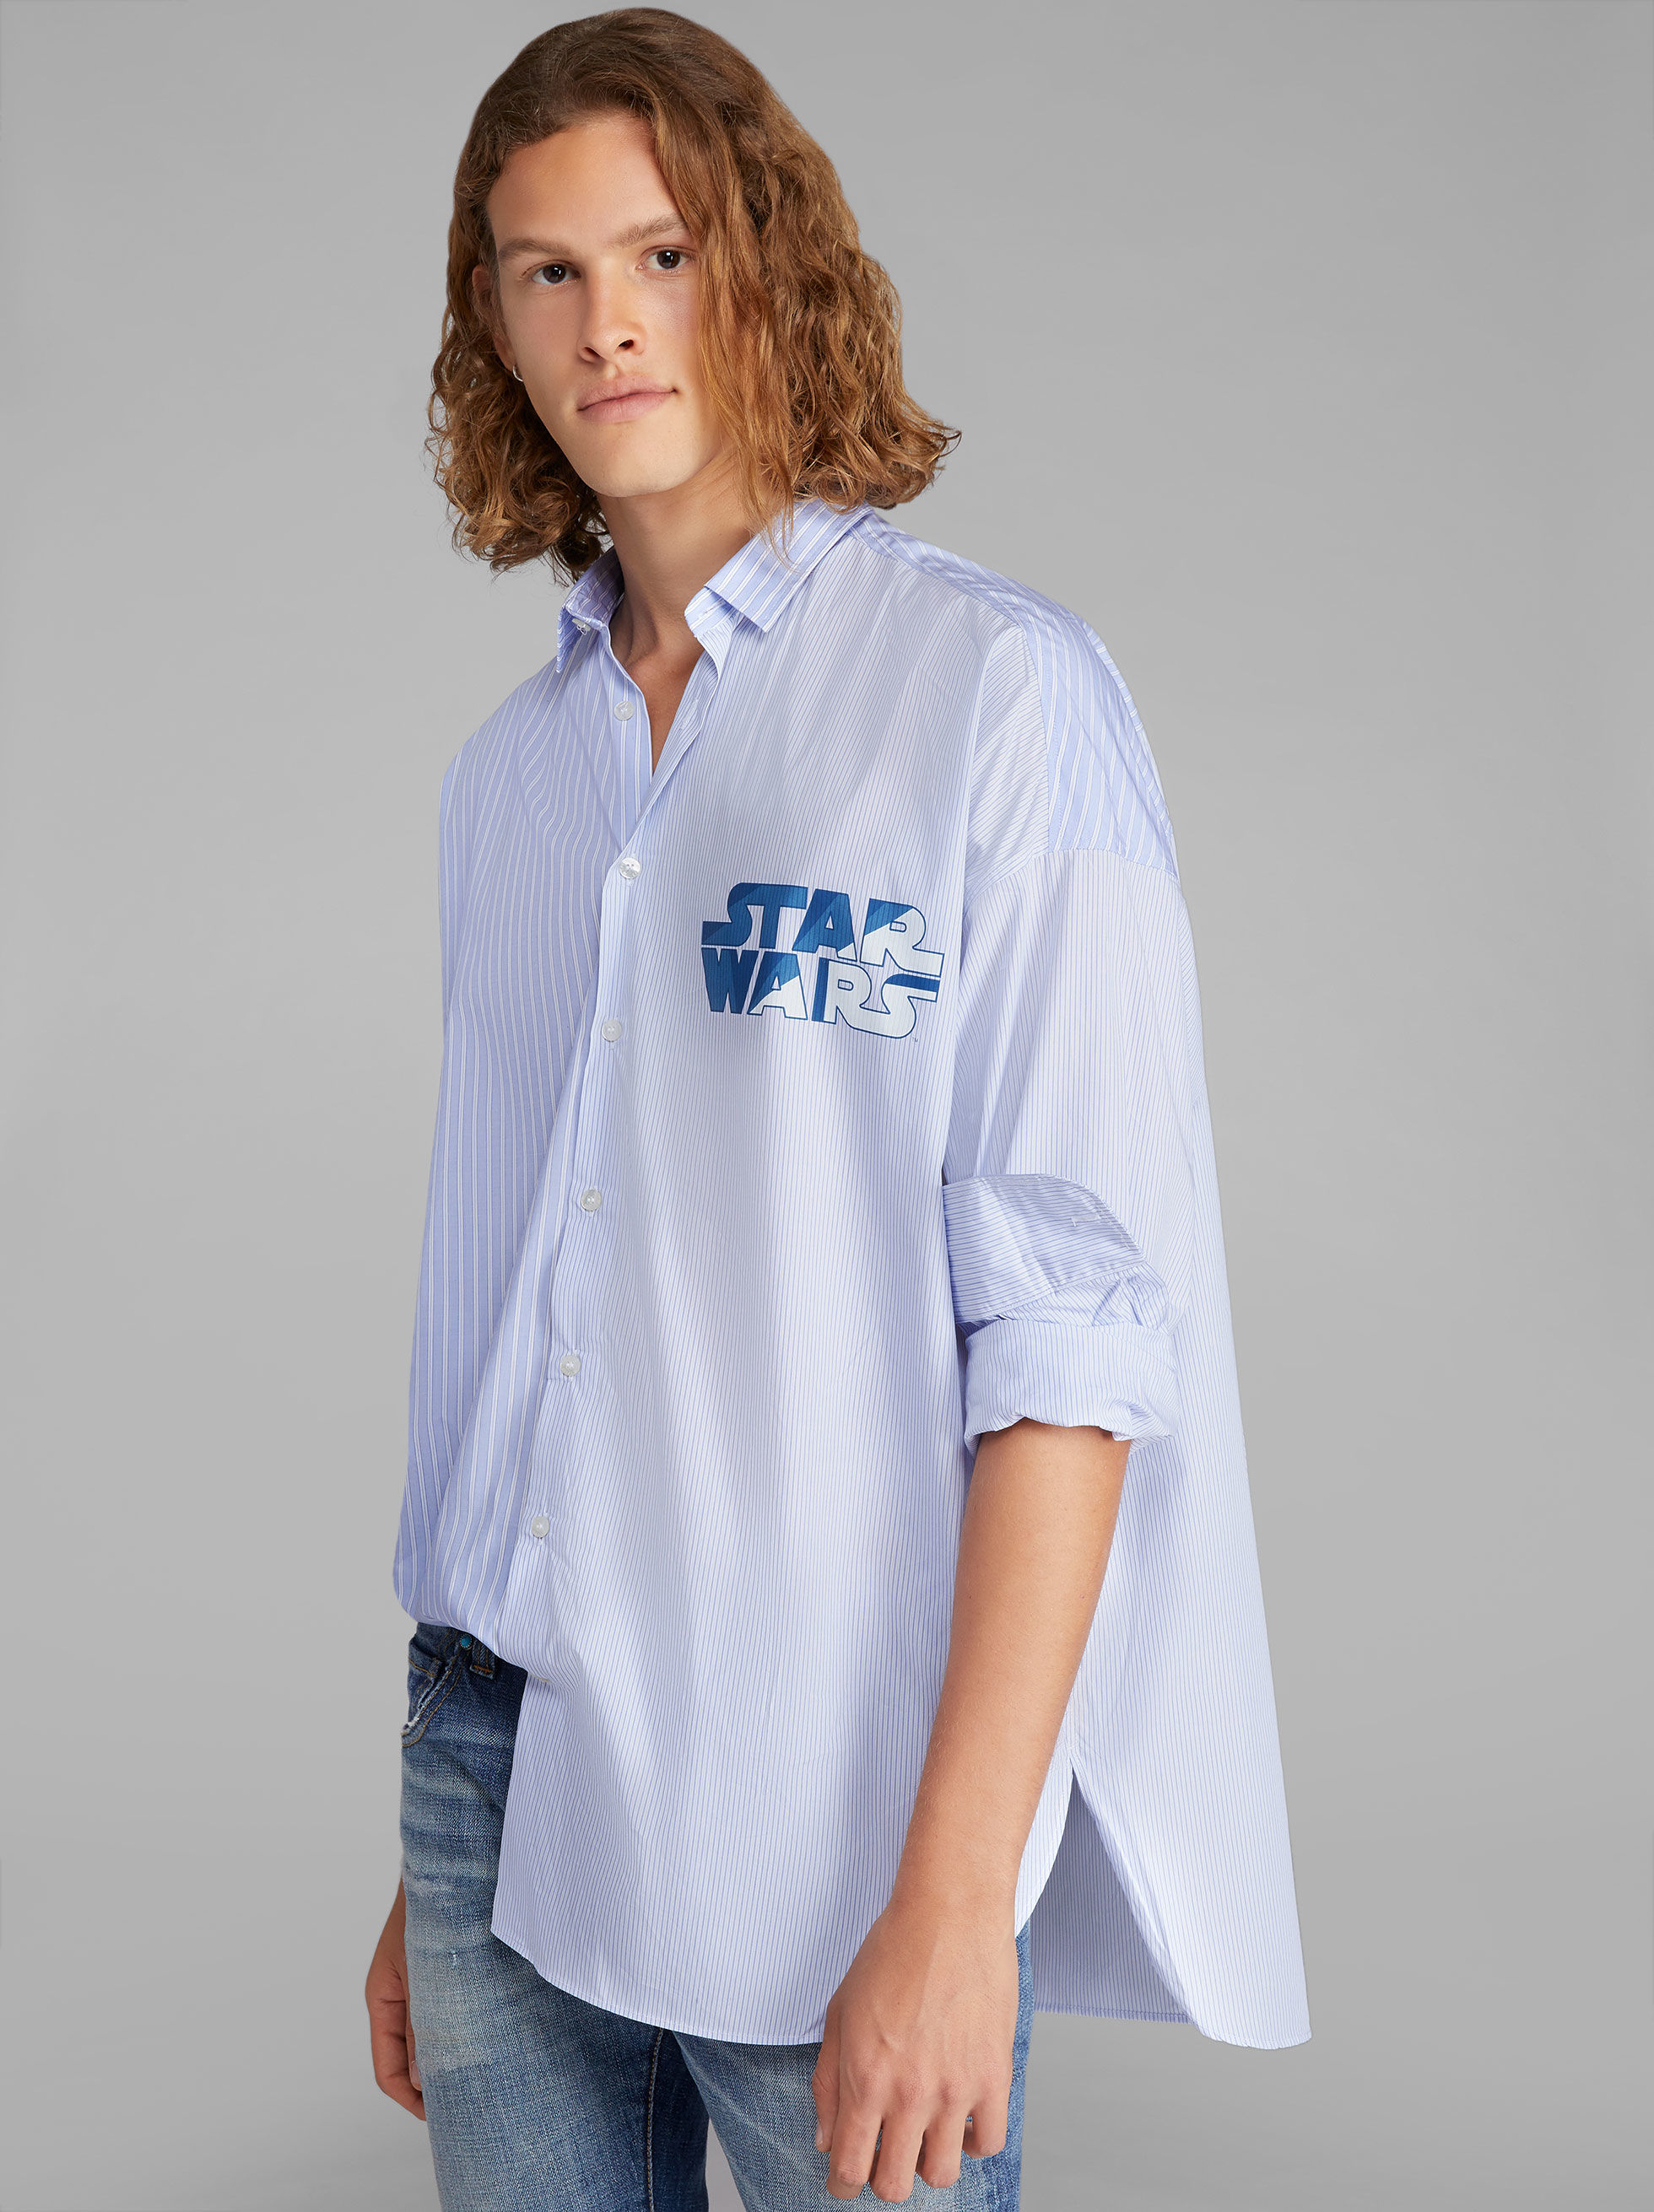 ETRO X STAR WARS SHIRT